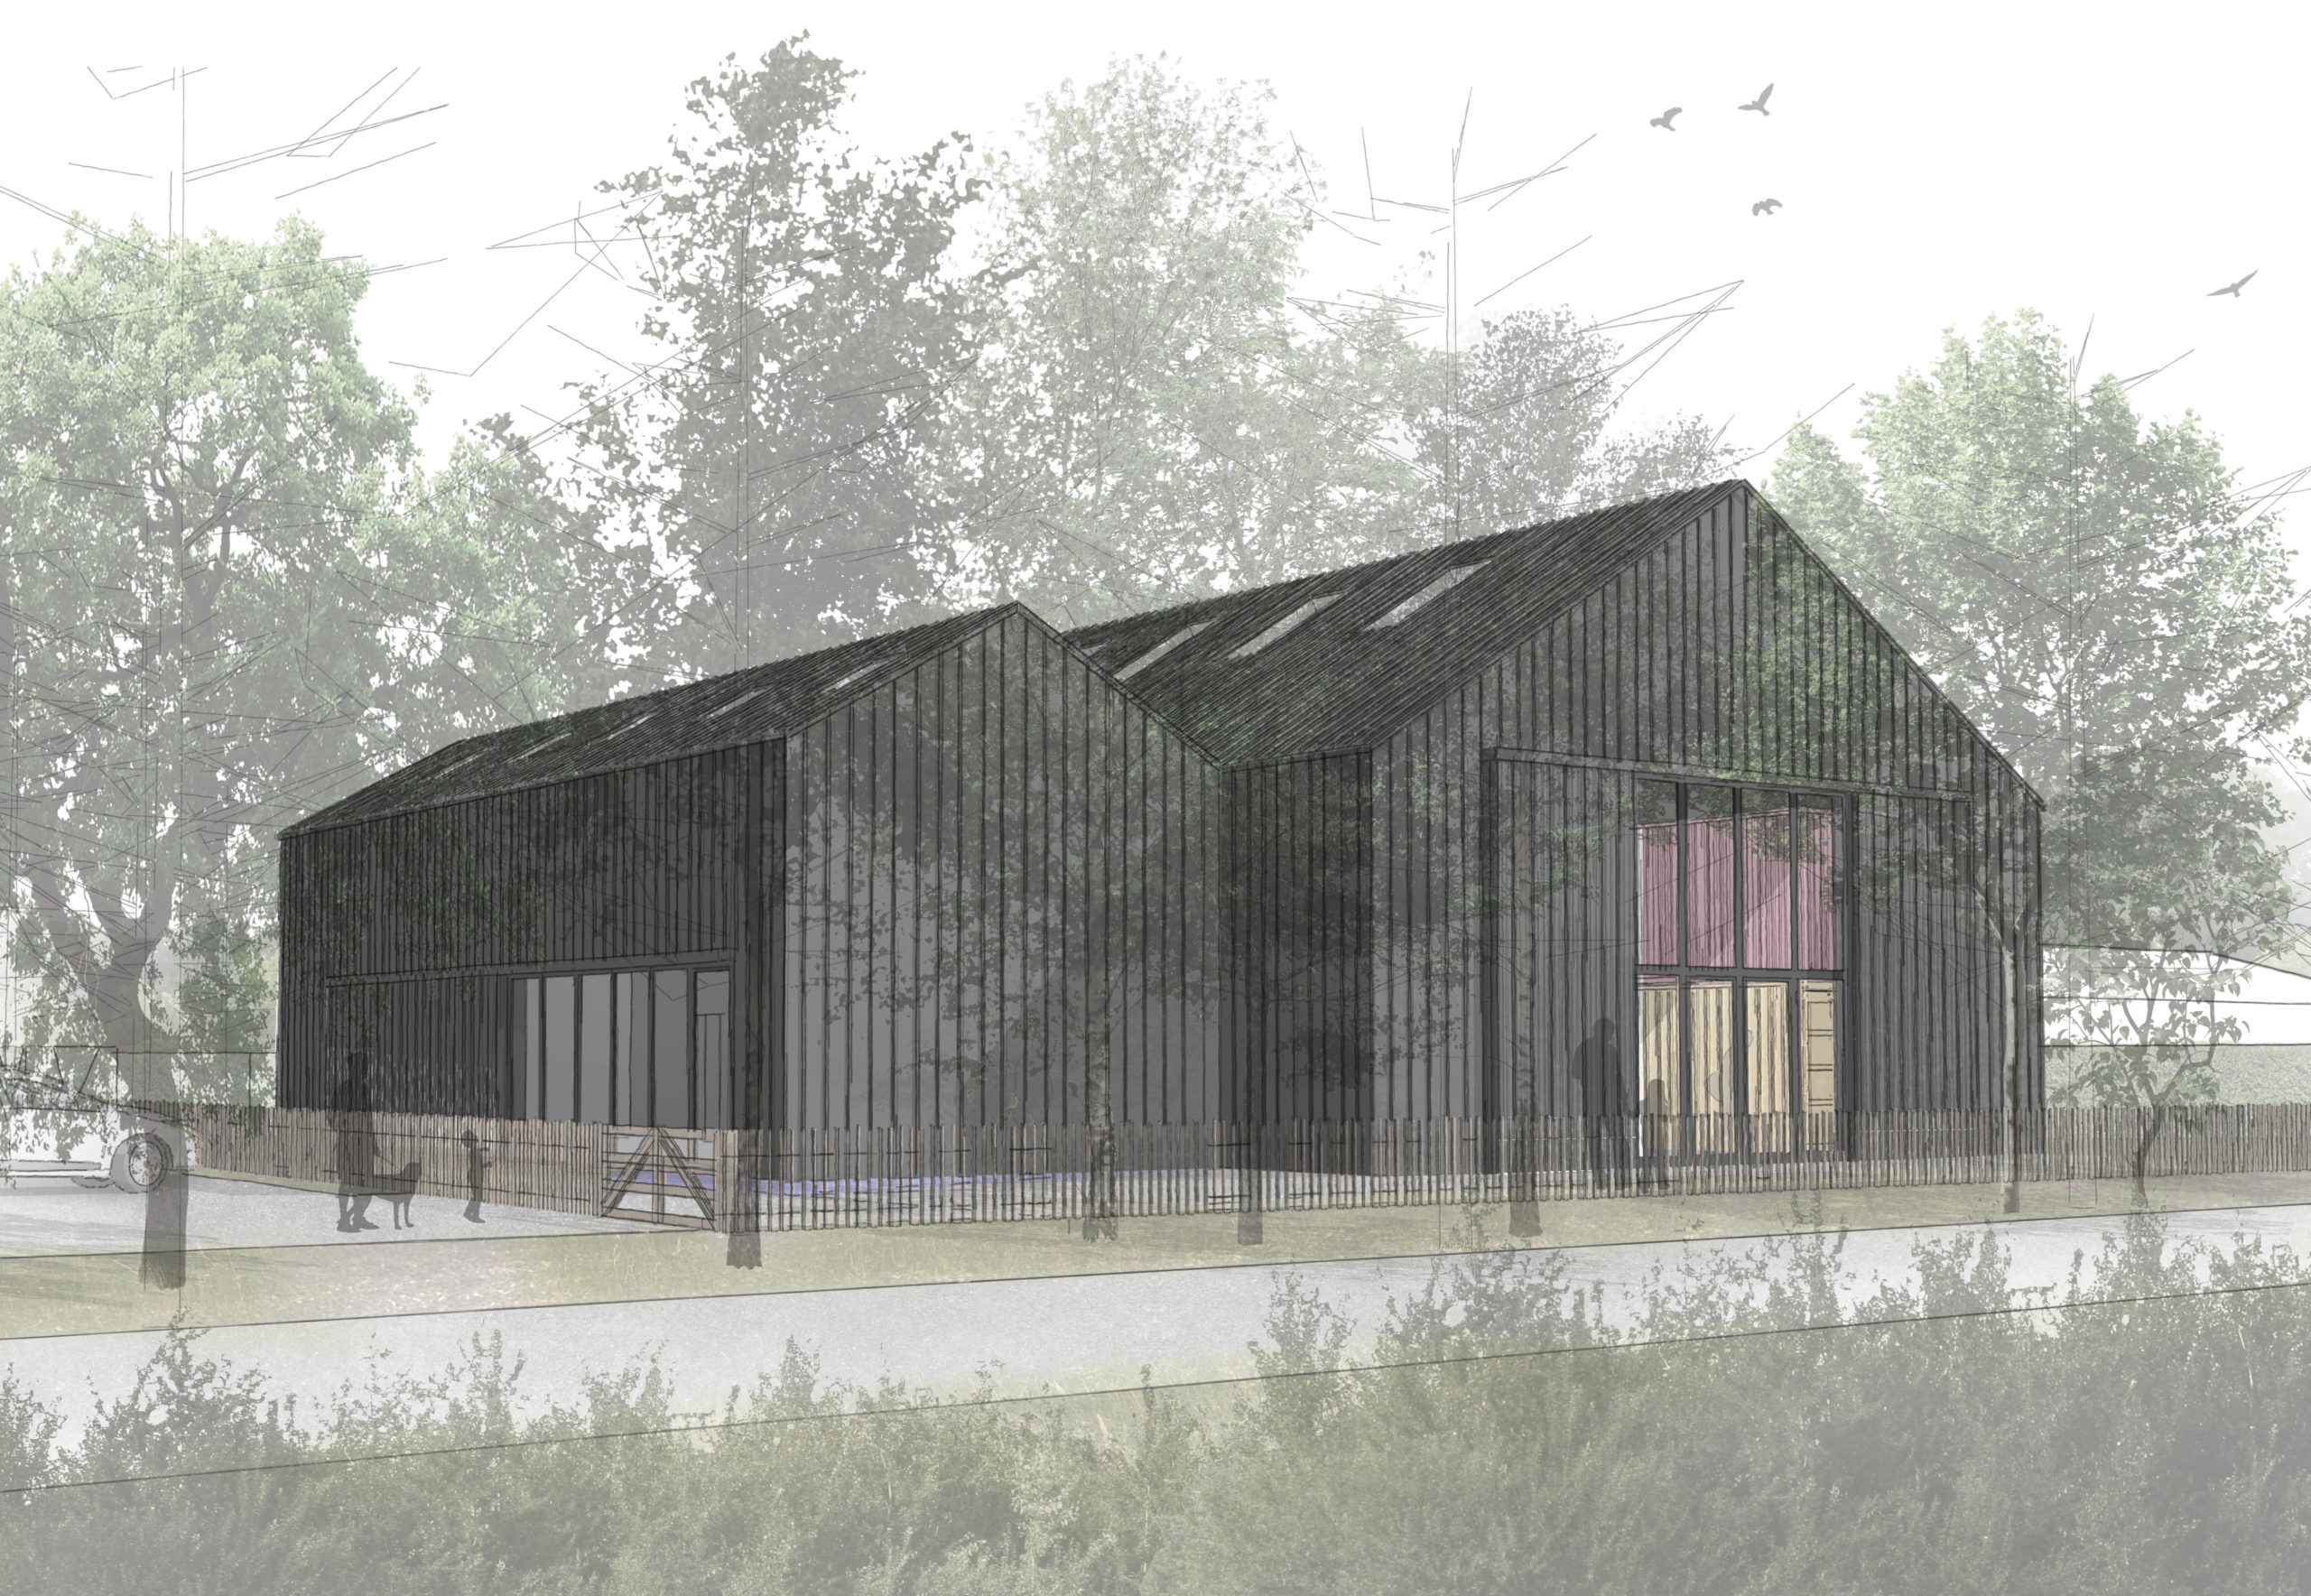 The Barn Project